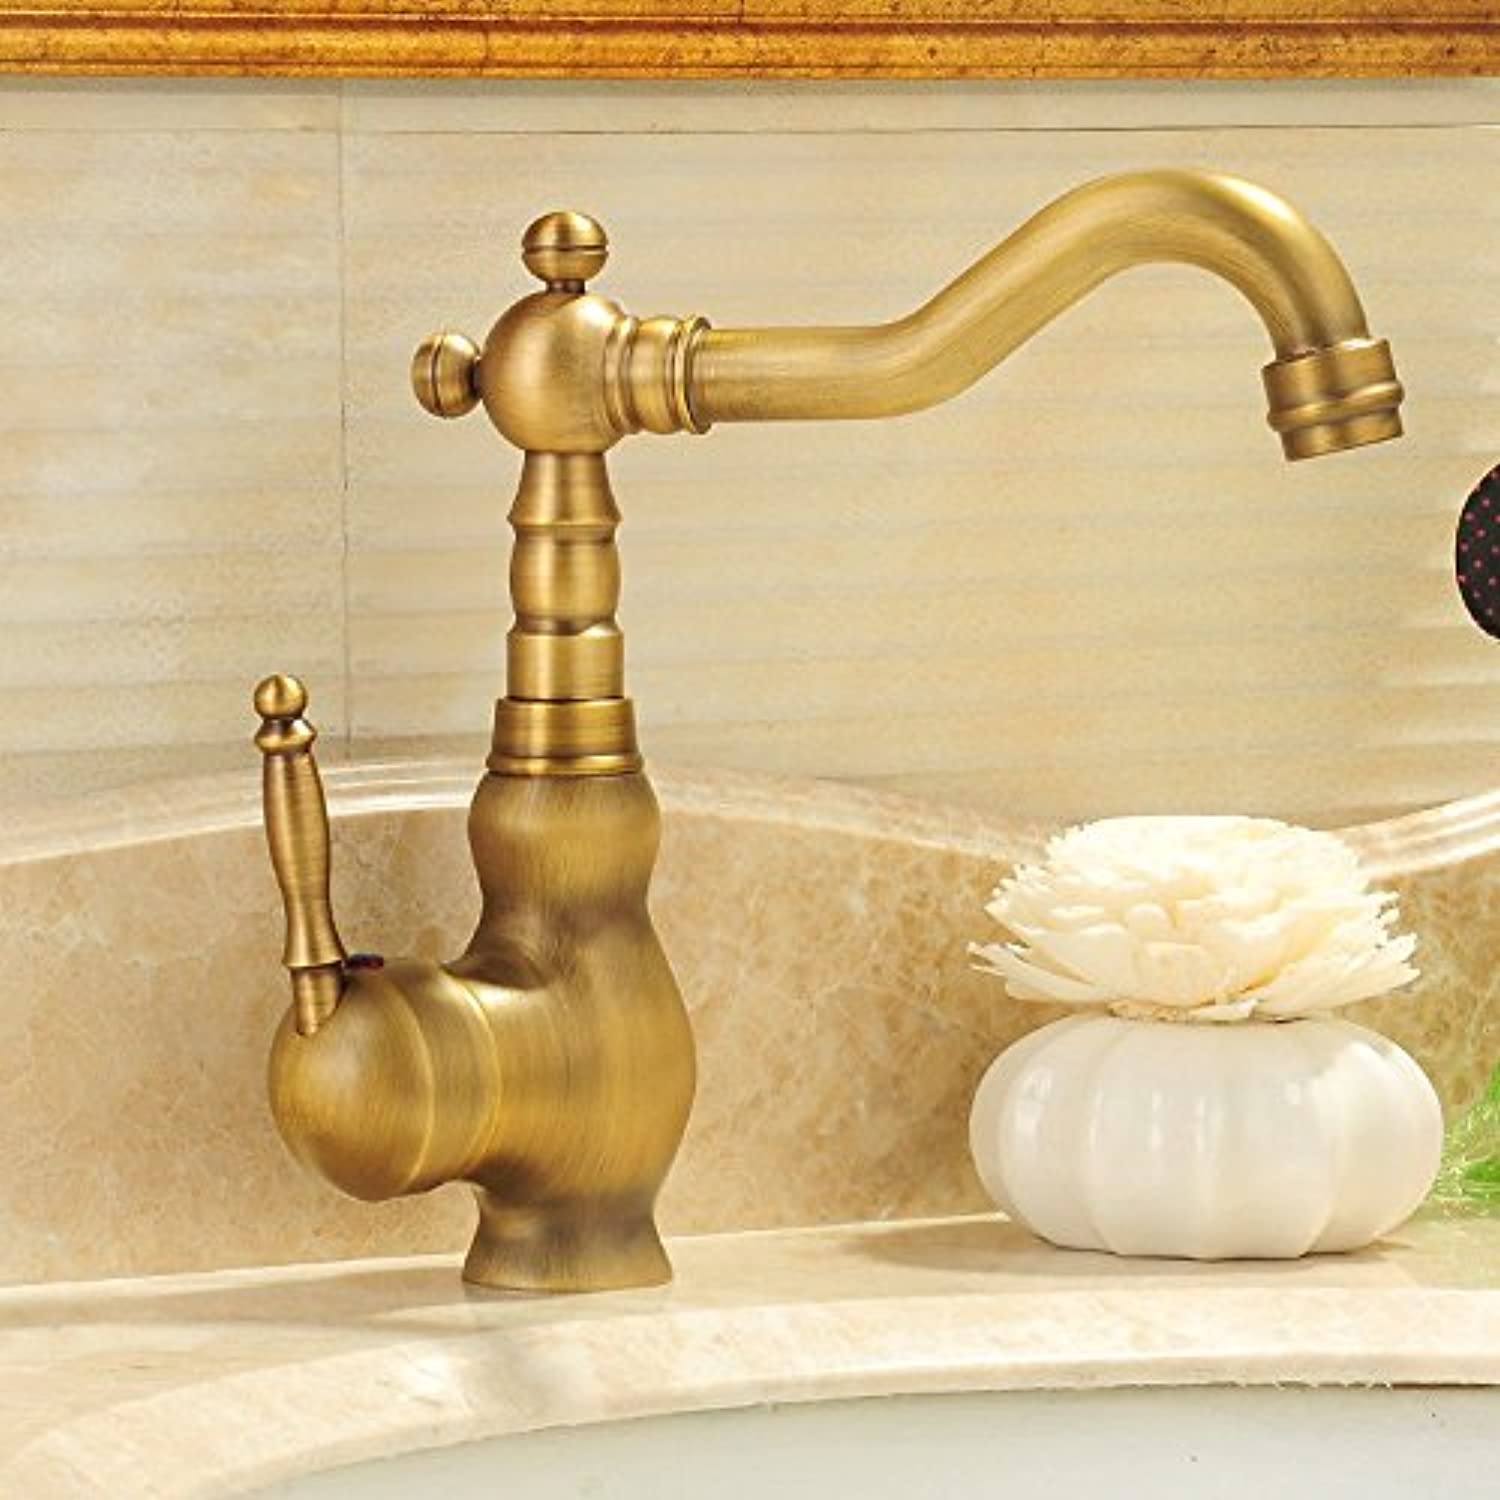 SHLONG Tap Antique Faucet Hot and Cold Water Faucet Basin Faucet Copper Copper Faucet